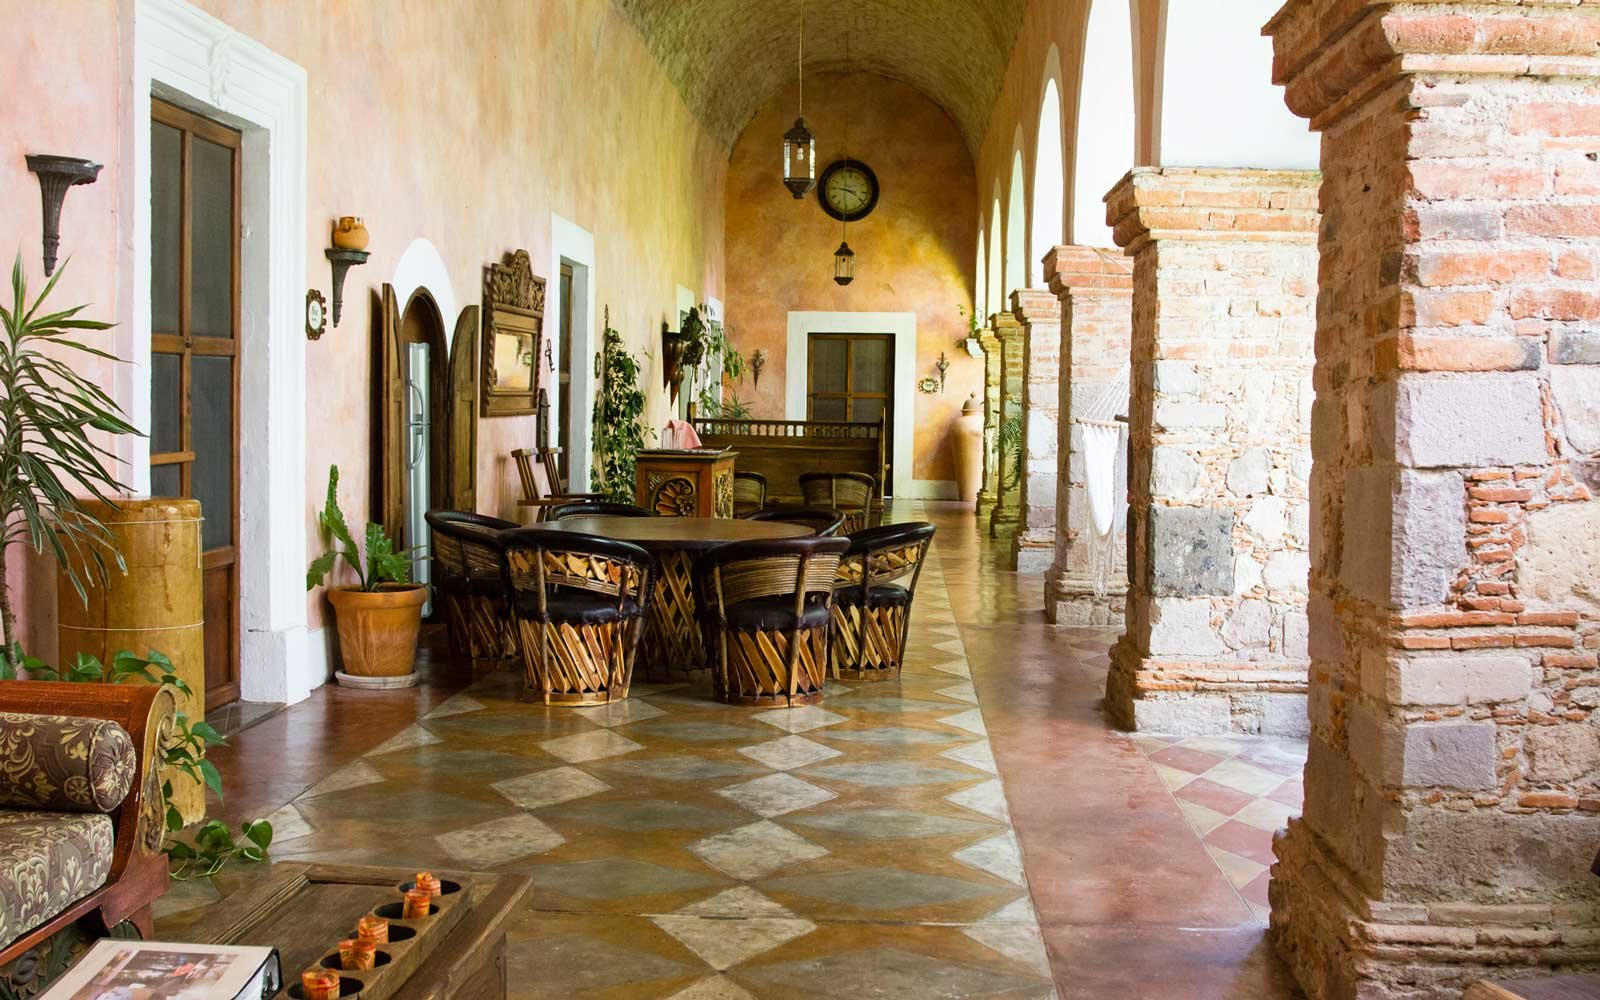 Guanajuato, Mexico: Hacienda las Trancas is a renovated ex-hacienda that is now a hotel near San Miguel Allende, Mexico